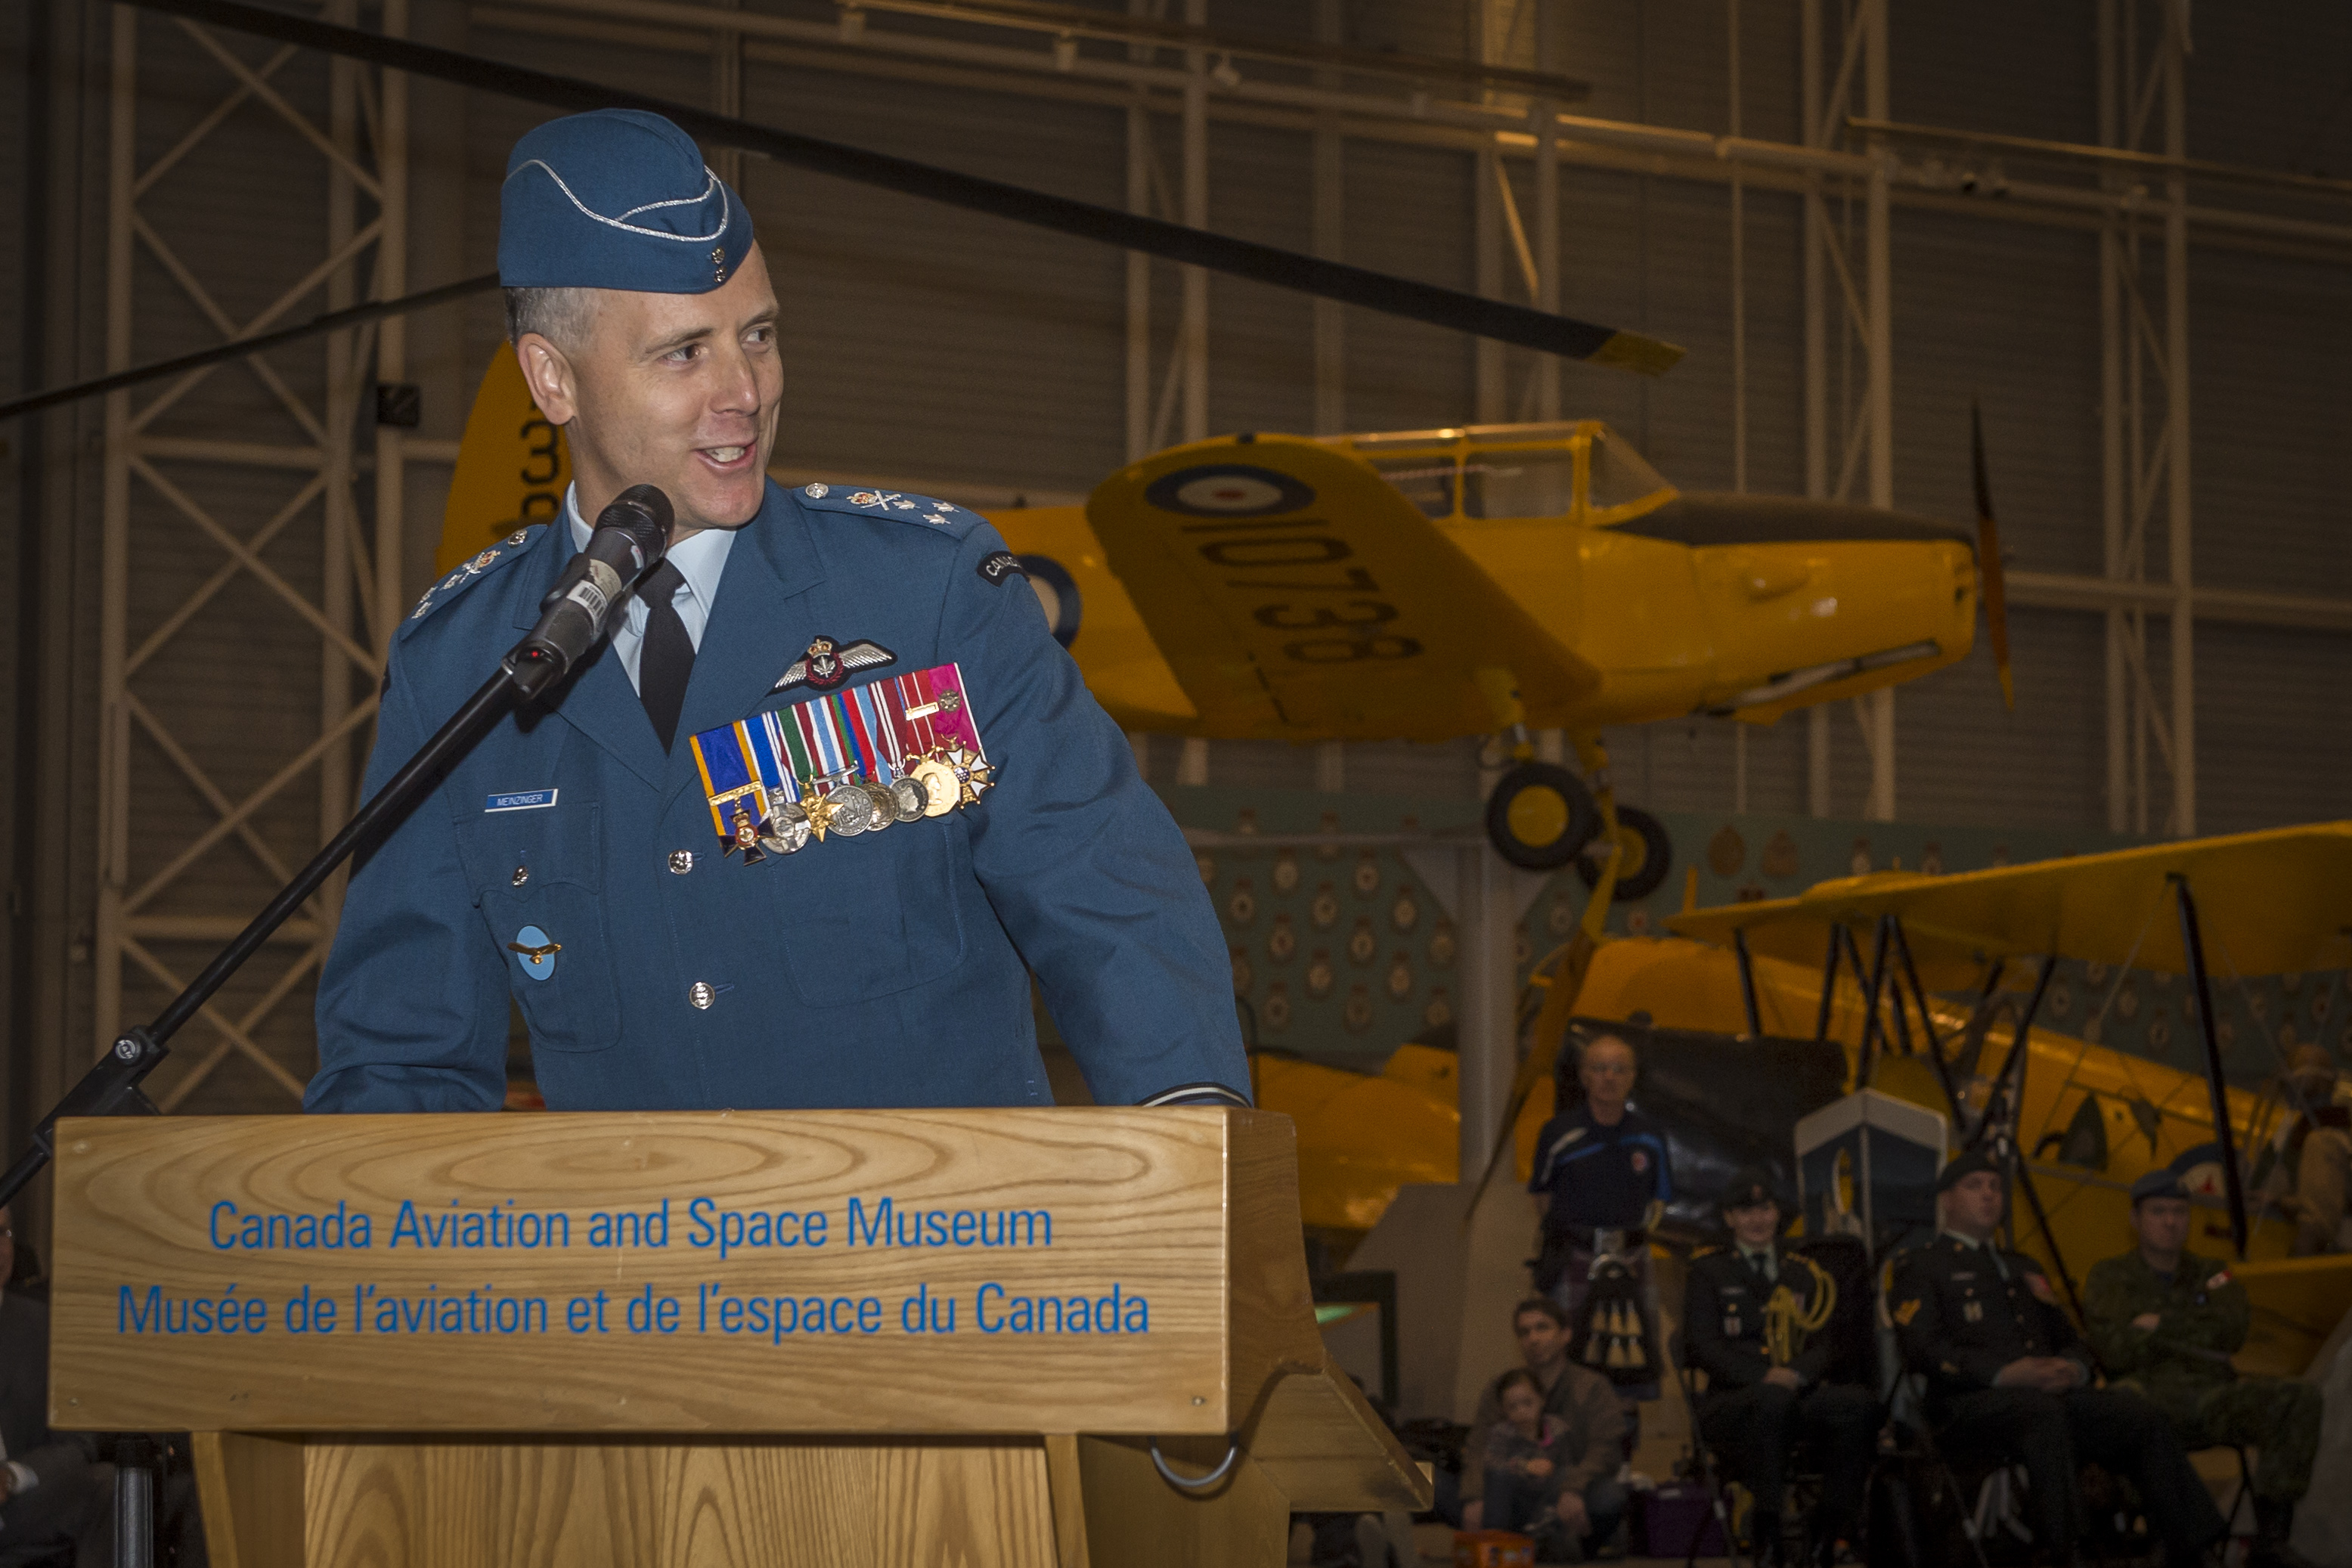 "'People, Policy, Program and Posture' will be anchor points for us as we move ahead,"" said Lieutenant-General Al Meinzinger, the new commander of the Royal Canadian Air Force, during his speech at the change of command ceremony held May 4, 2018. PHOTO: Corporal Alana Morin, FA03-2018-0040-004"